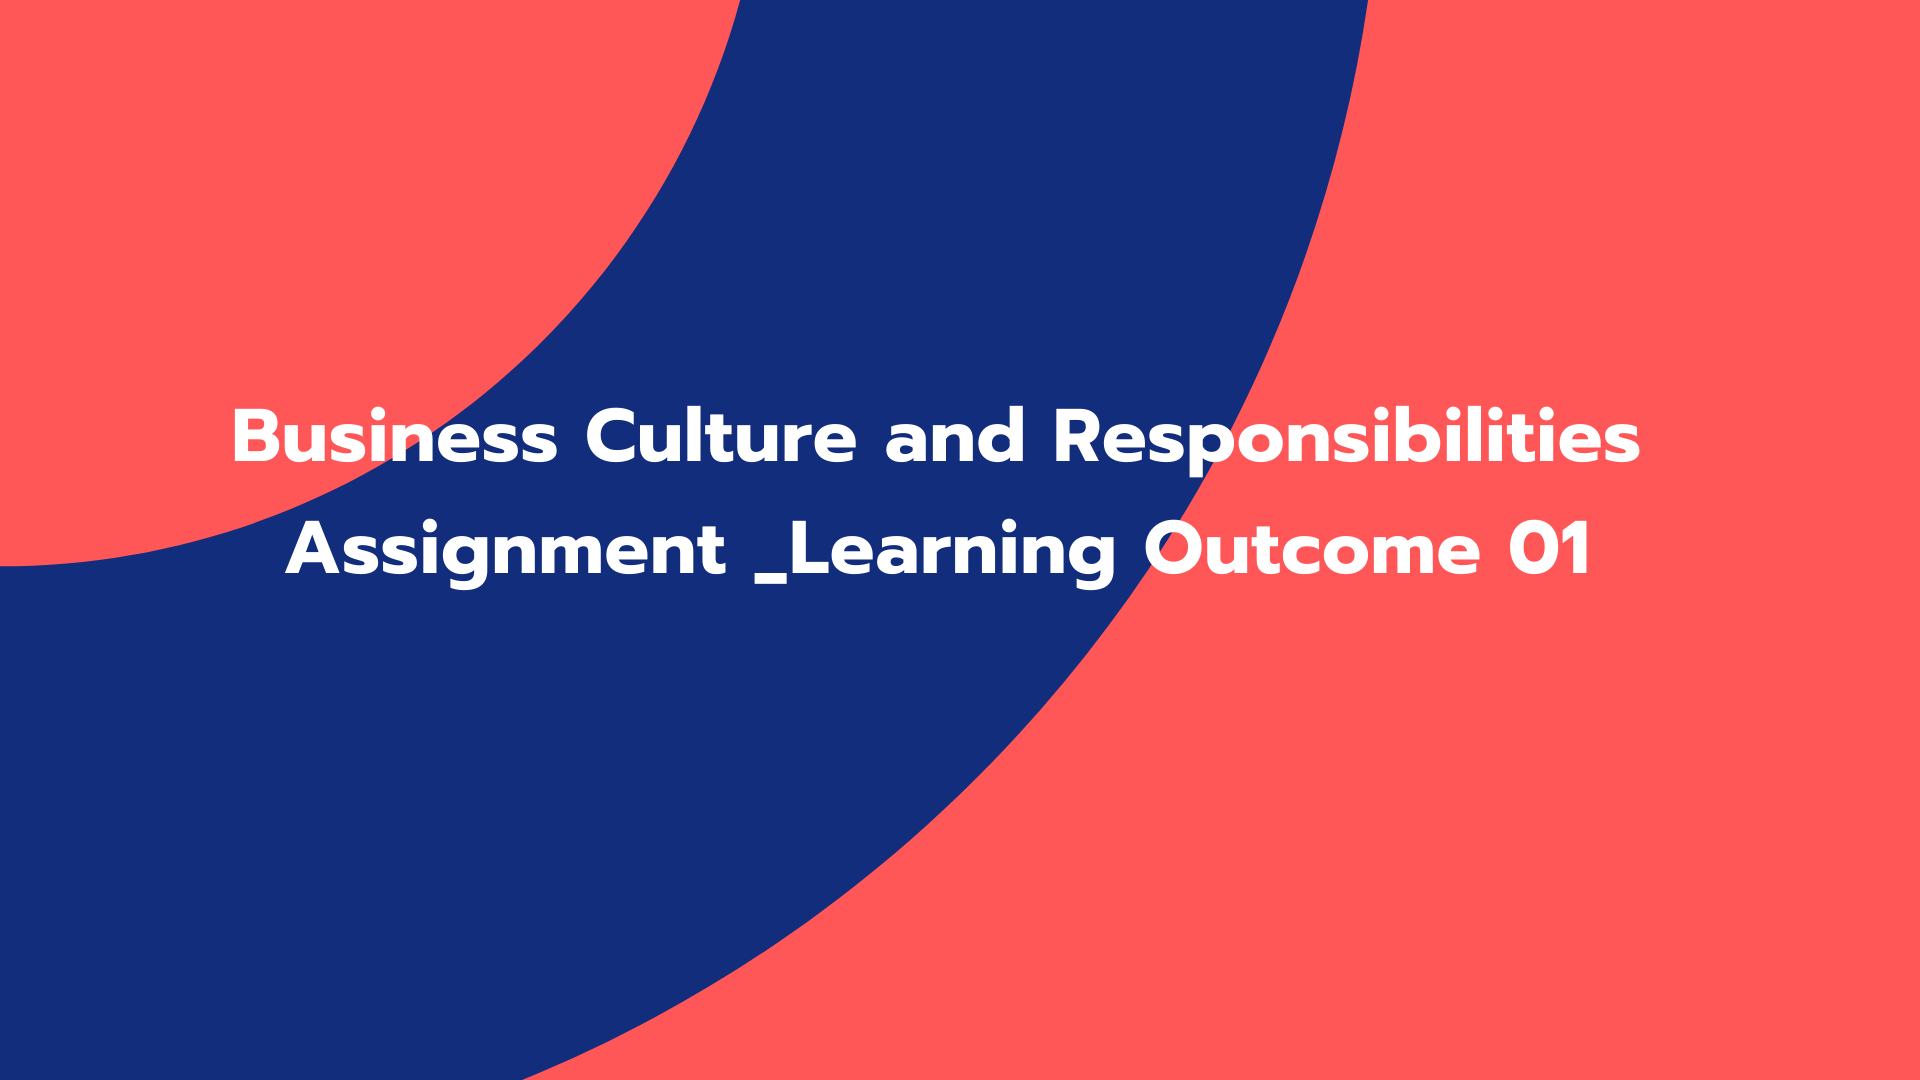 Business Culture and Responsibilities Assignment _Learning Outcome 01